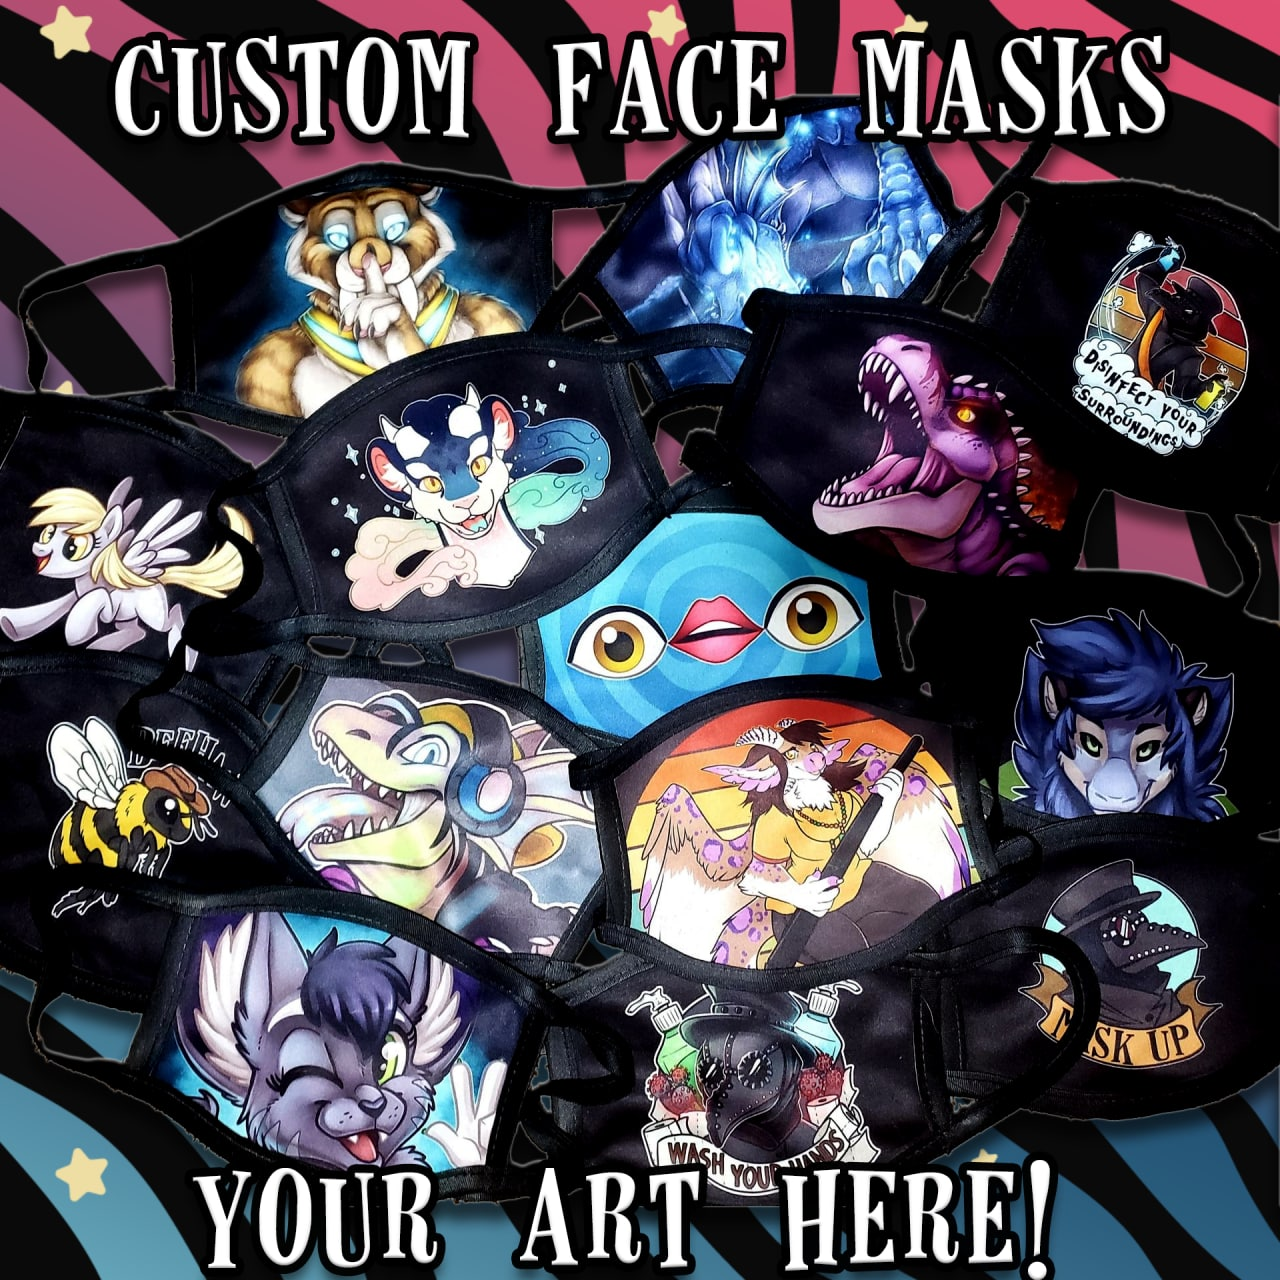 Face Masks - Custom